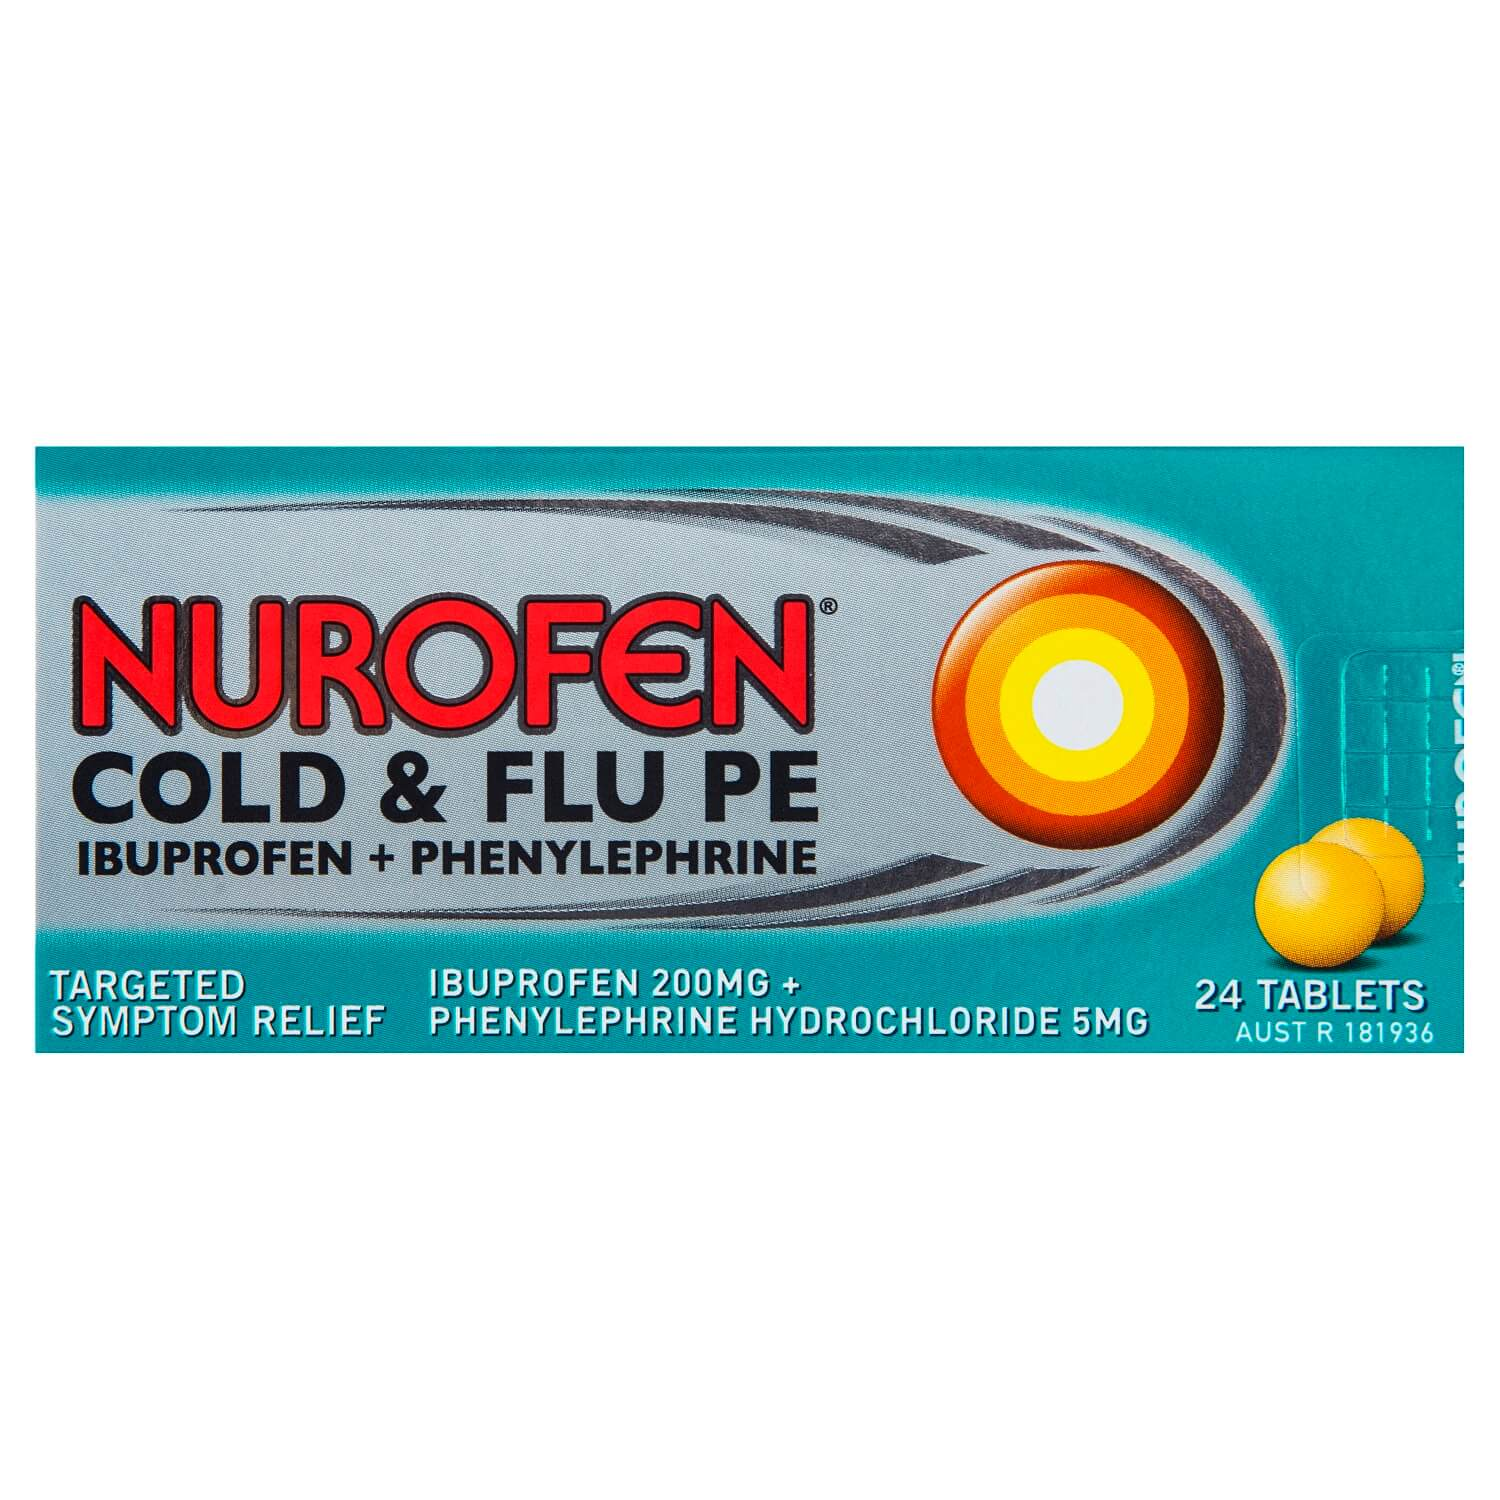 Nurofen Cold & Flu PE